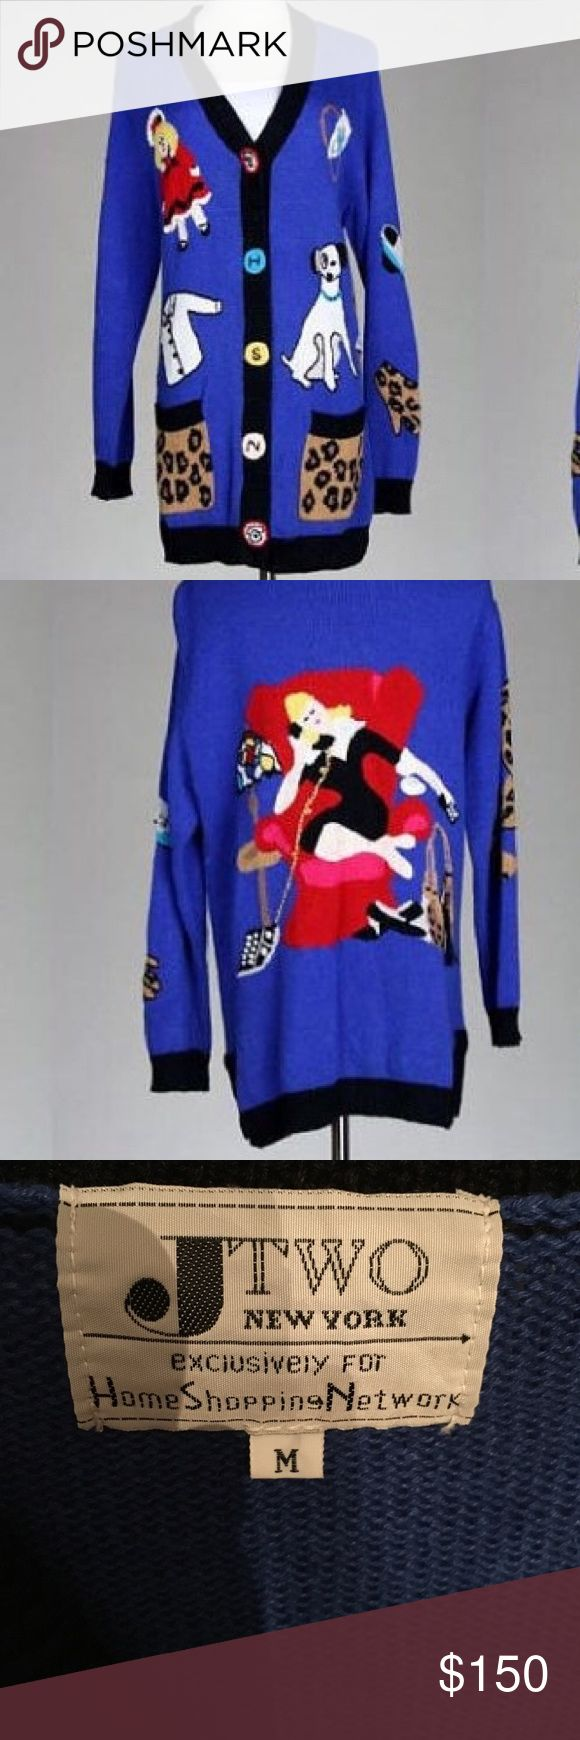 RARE!!! HSN vintage 80's sweater Exclusively made for home shopping network Jtwo New York vintage sweater. Amazing details Sweaters